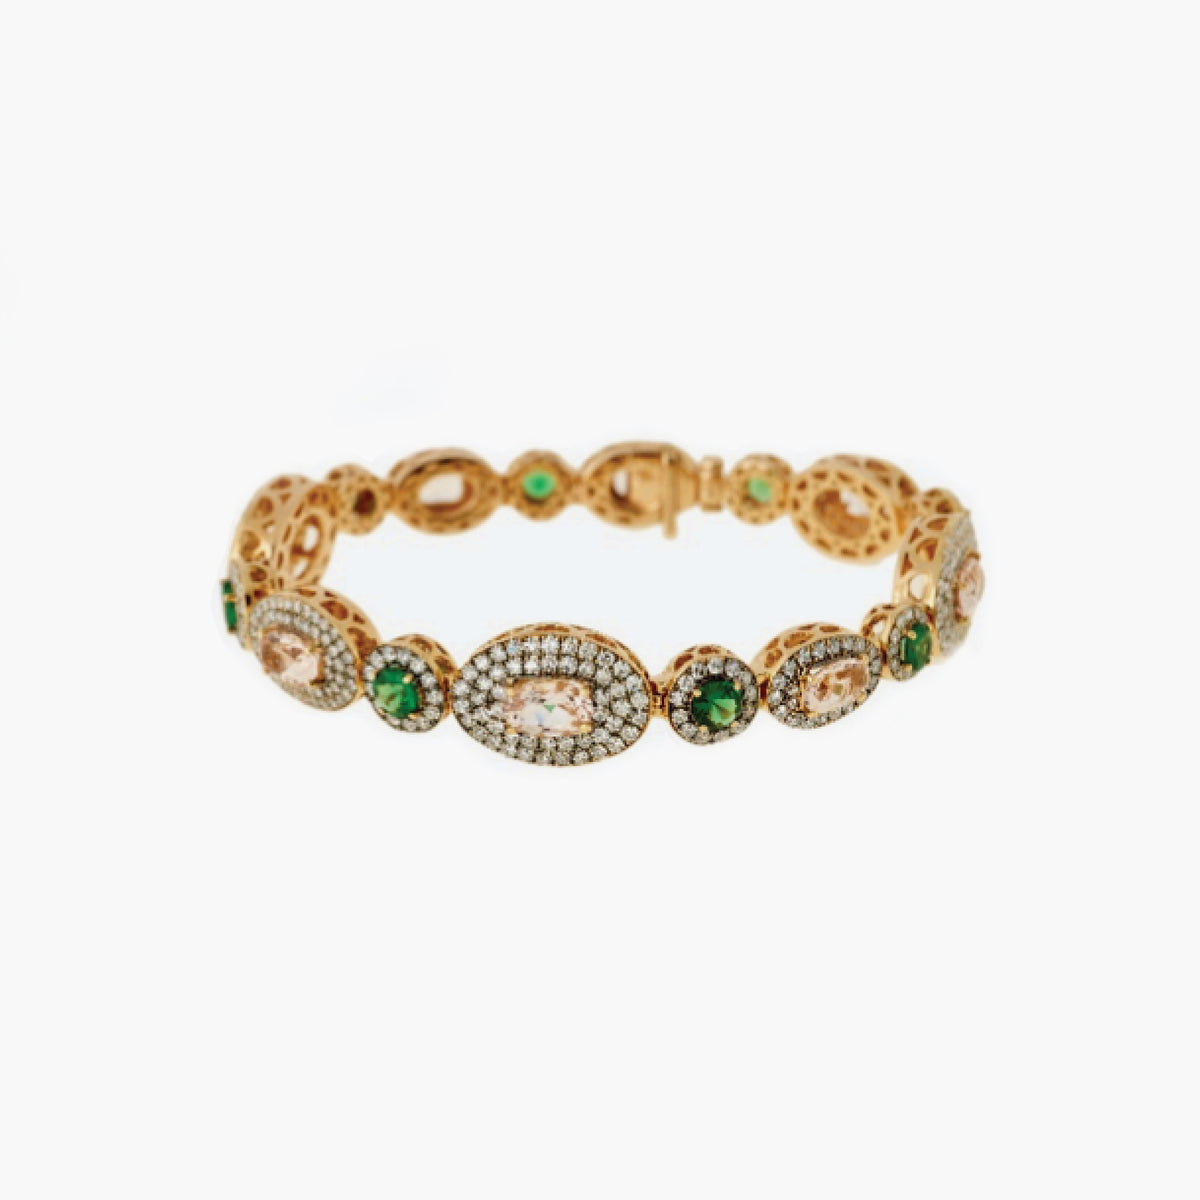 Bracelet with Tsavorite and Diamonds